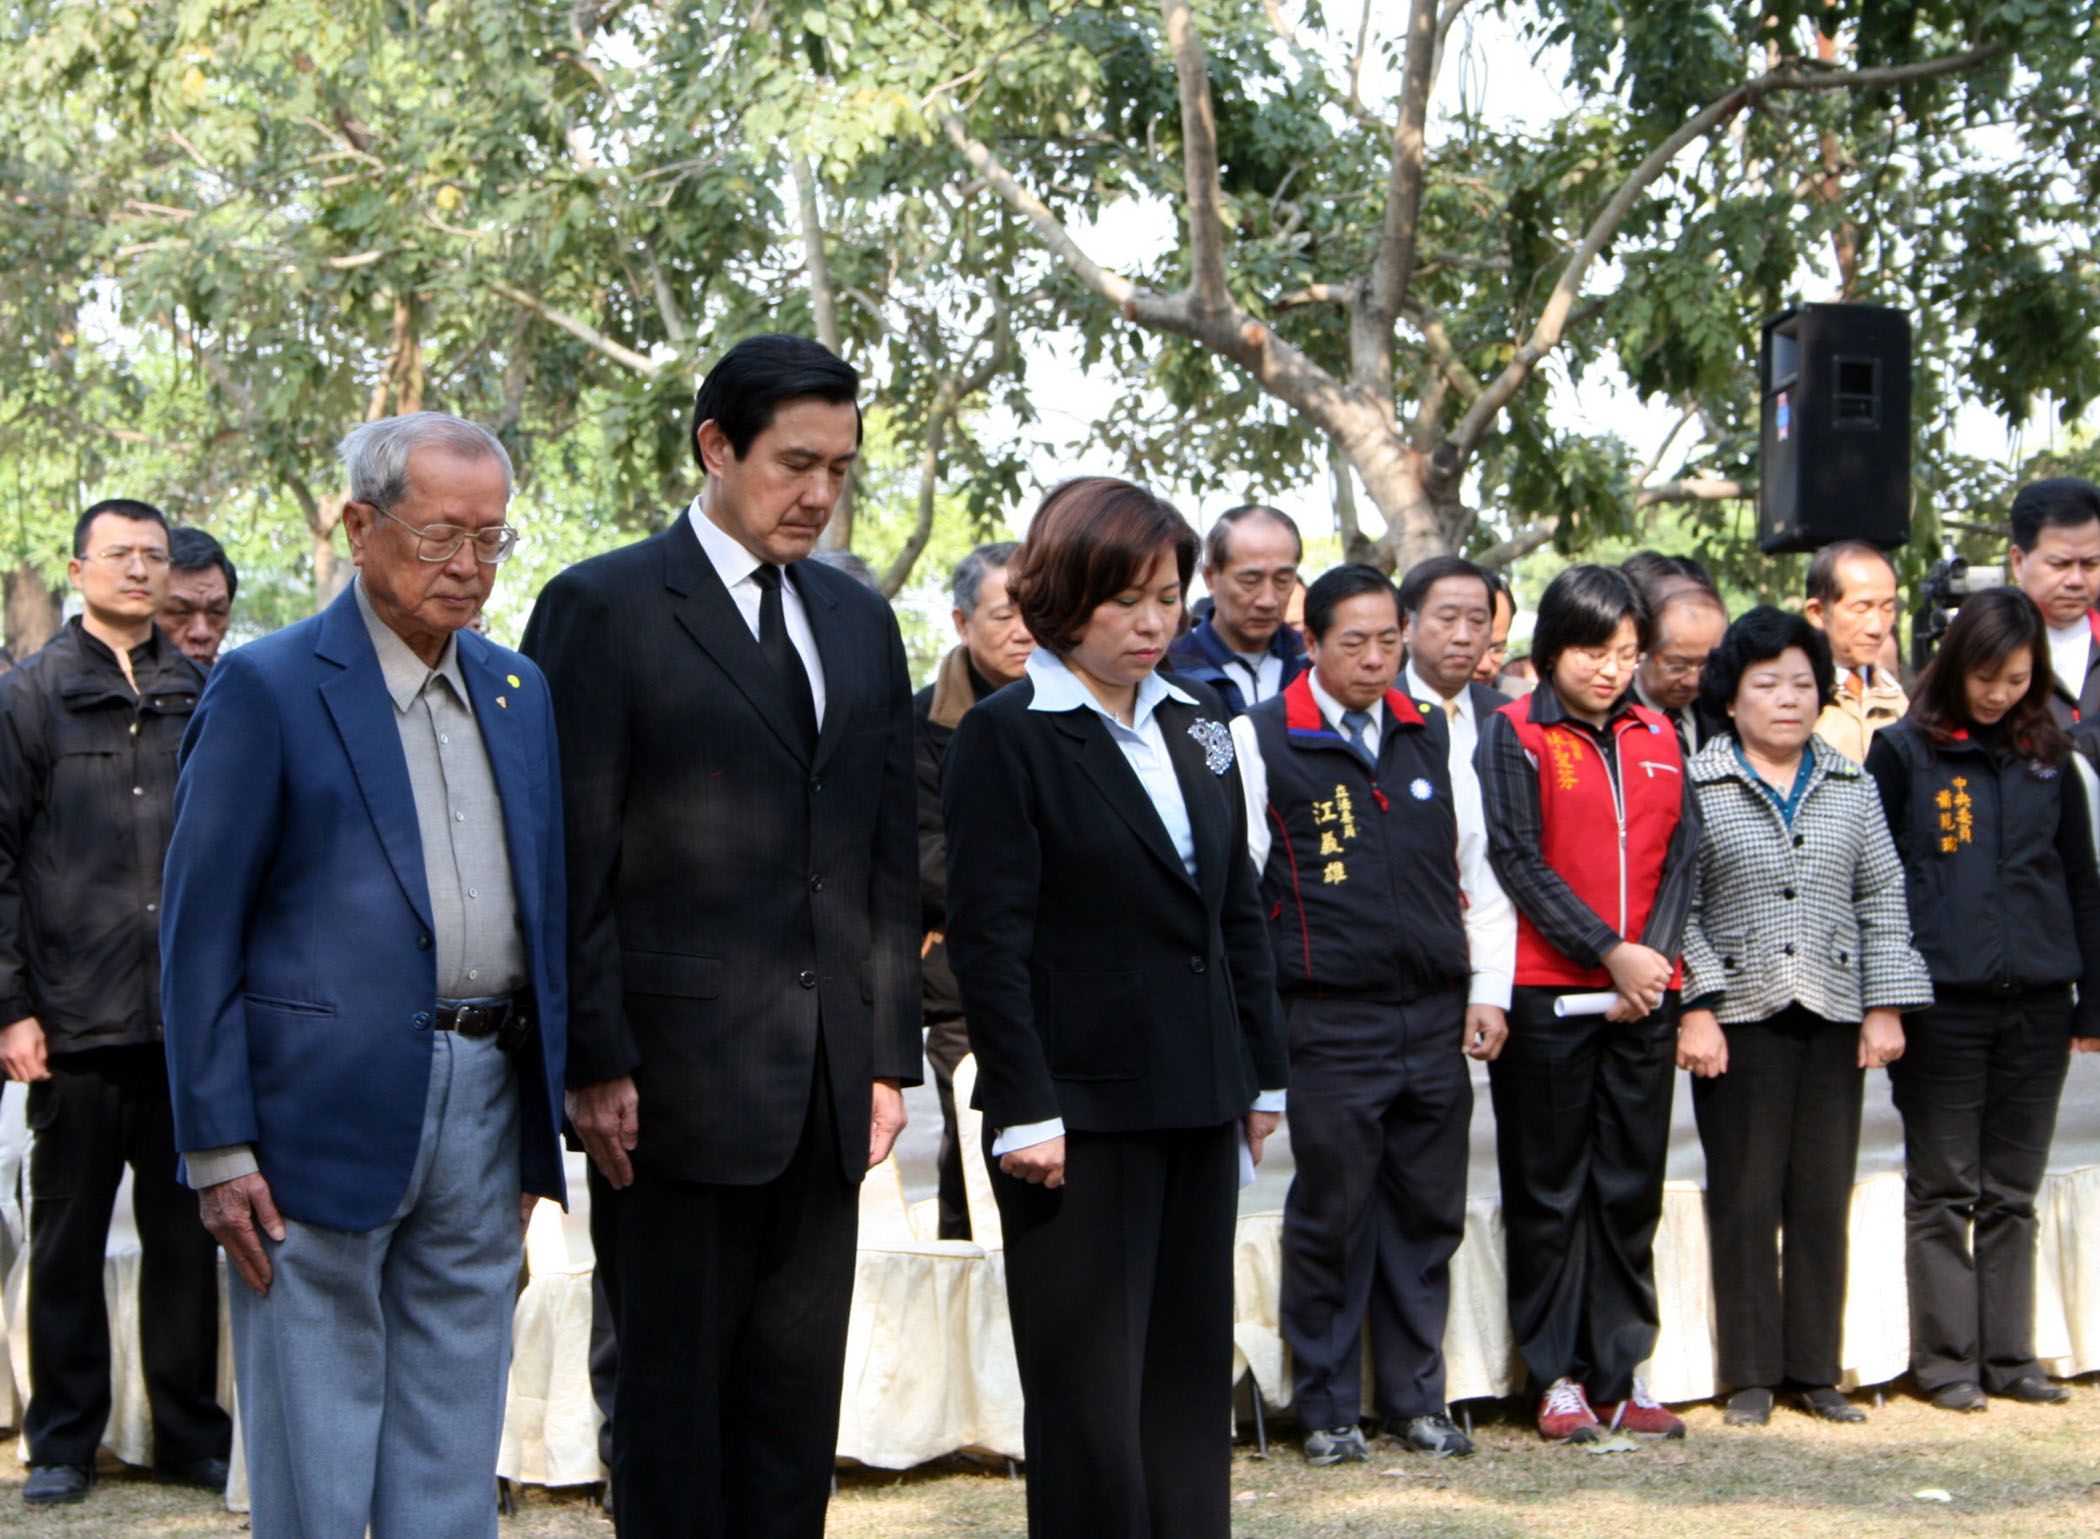 Kuomintang presidential candidate Ma Ying-jeou, left, joins family members of victims of the 228 Incident at a ceremony at 228 Memorial Park in Chiayi...